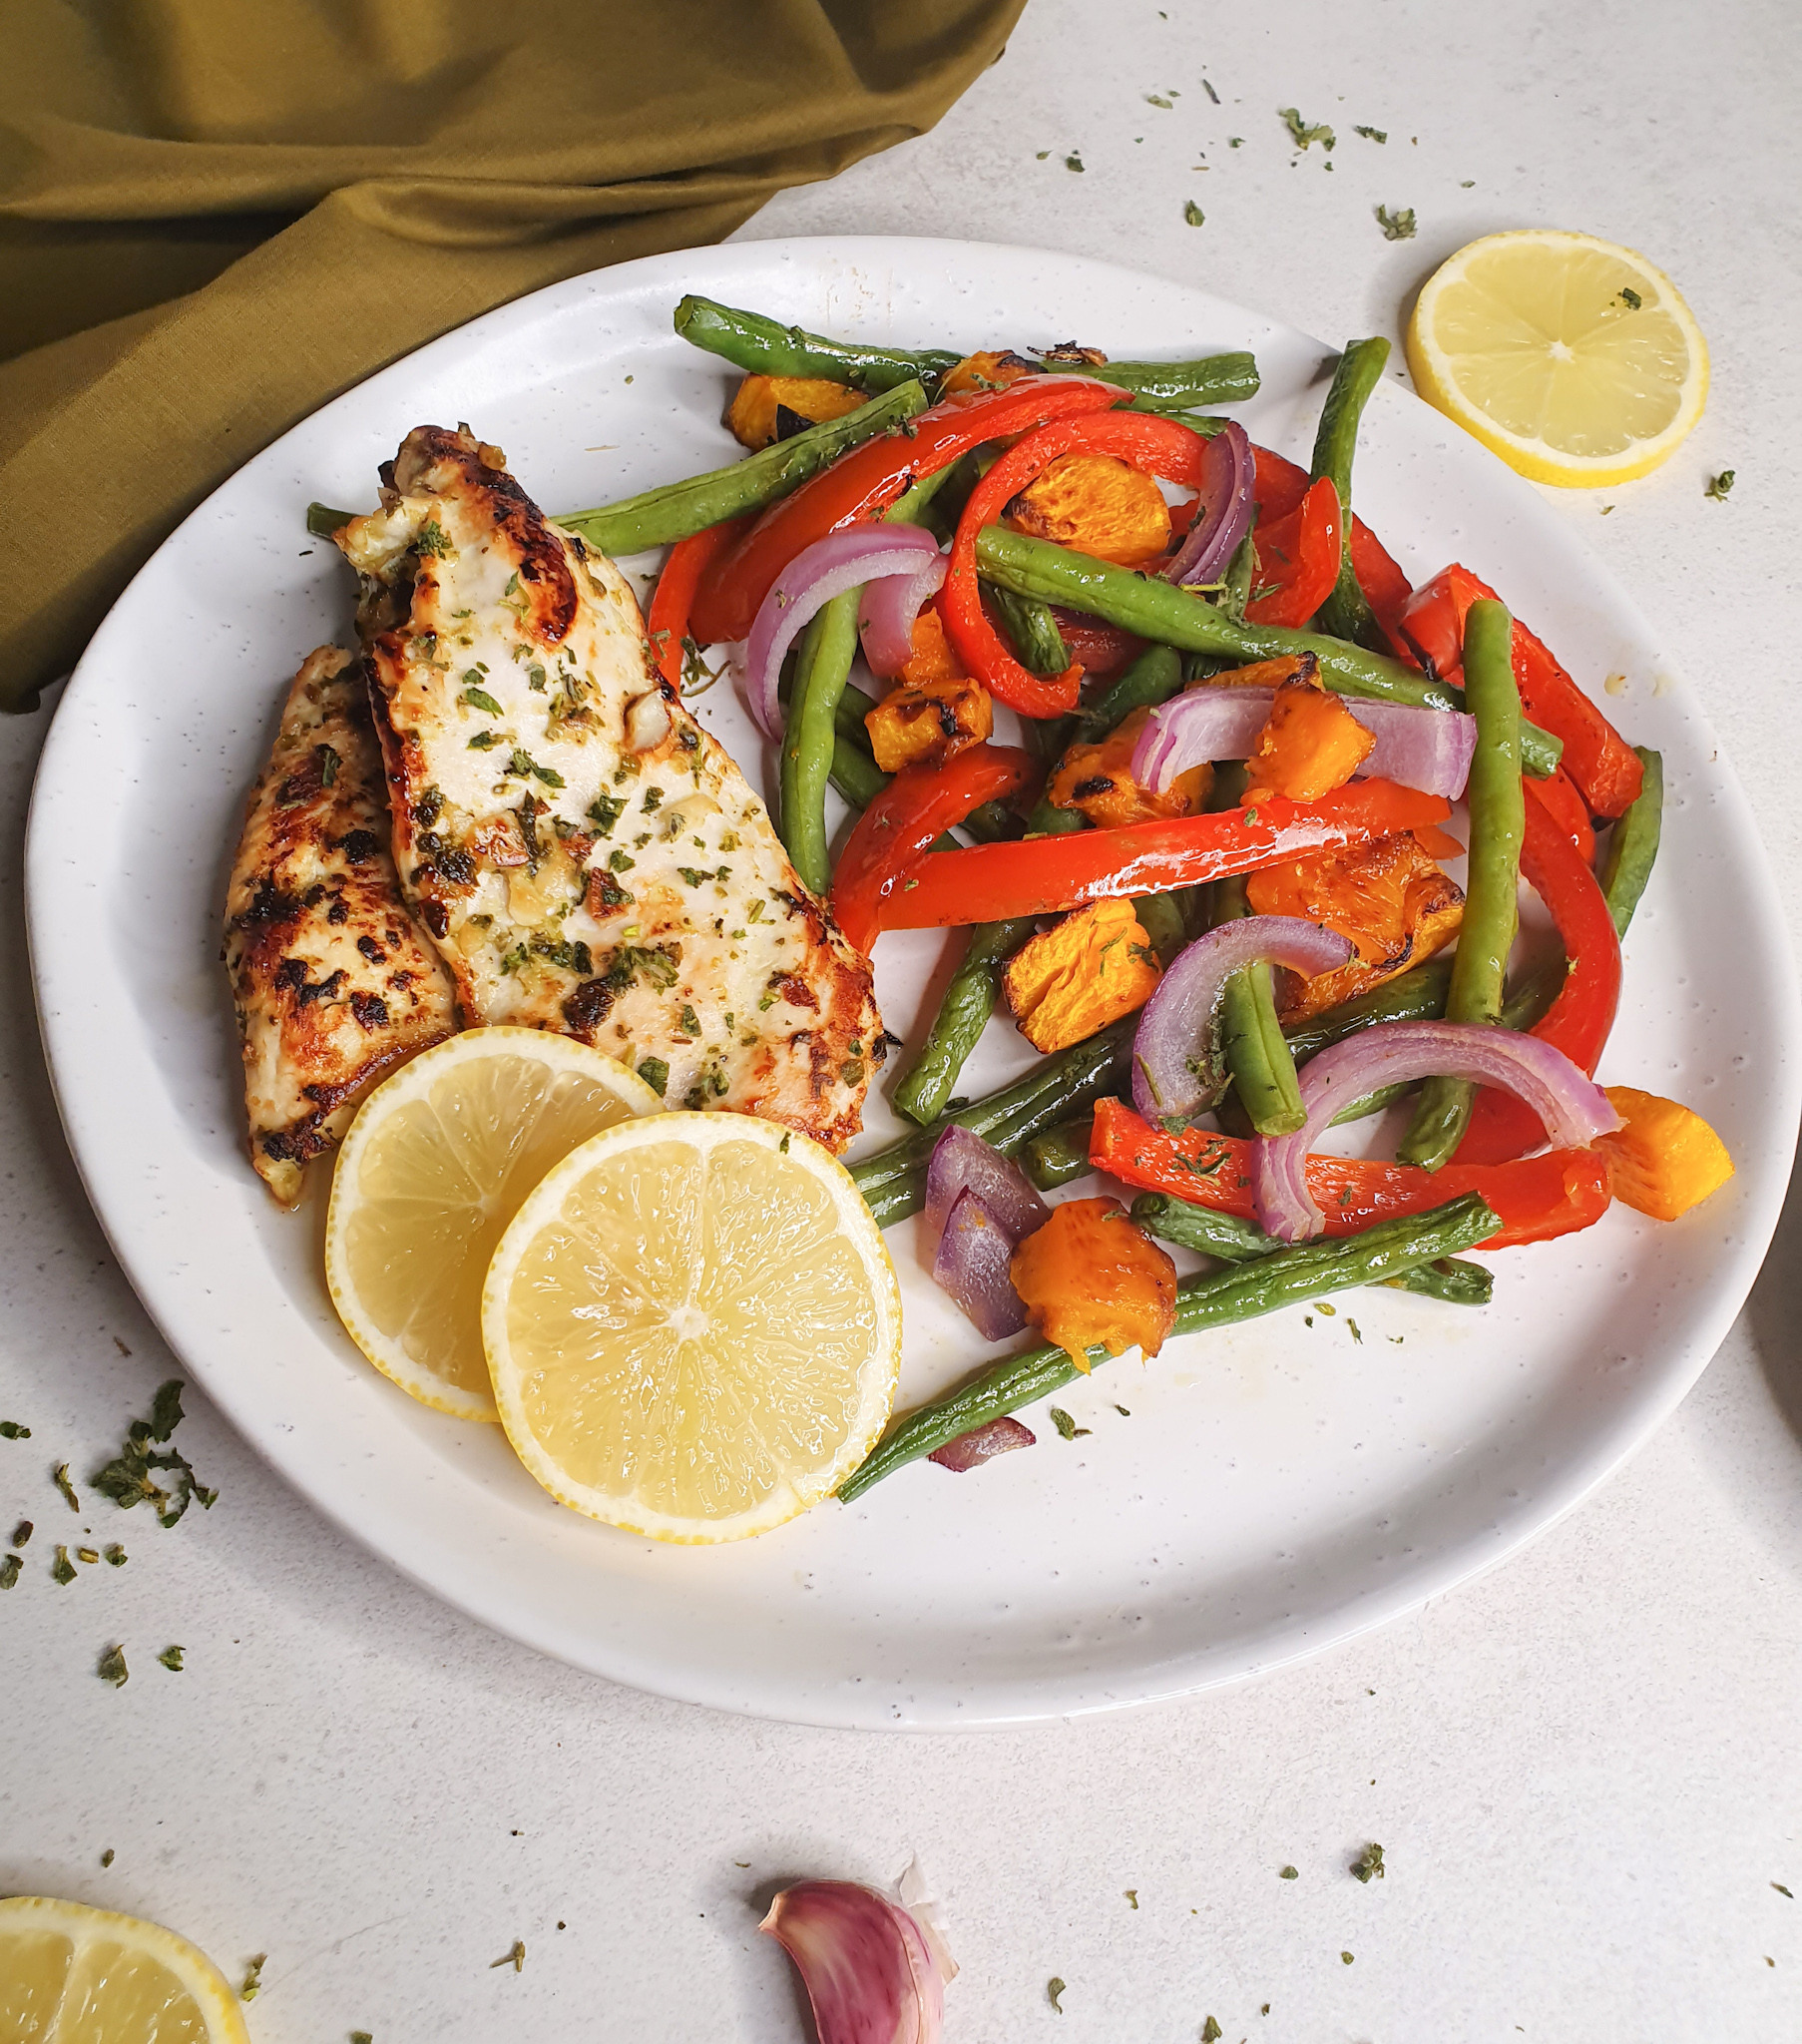 A Plate with grilled chicken and lemon slices with a side of beans, capsicum,onions and pumpkin